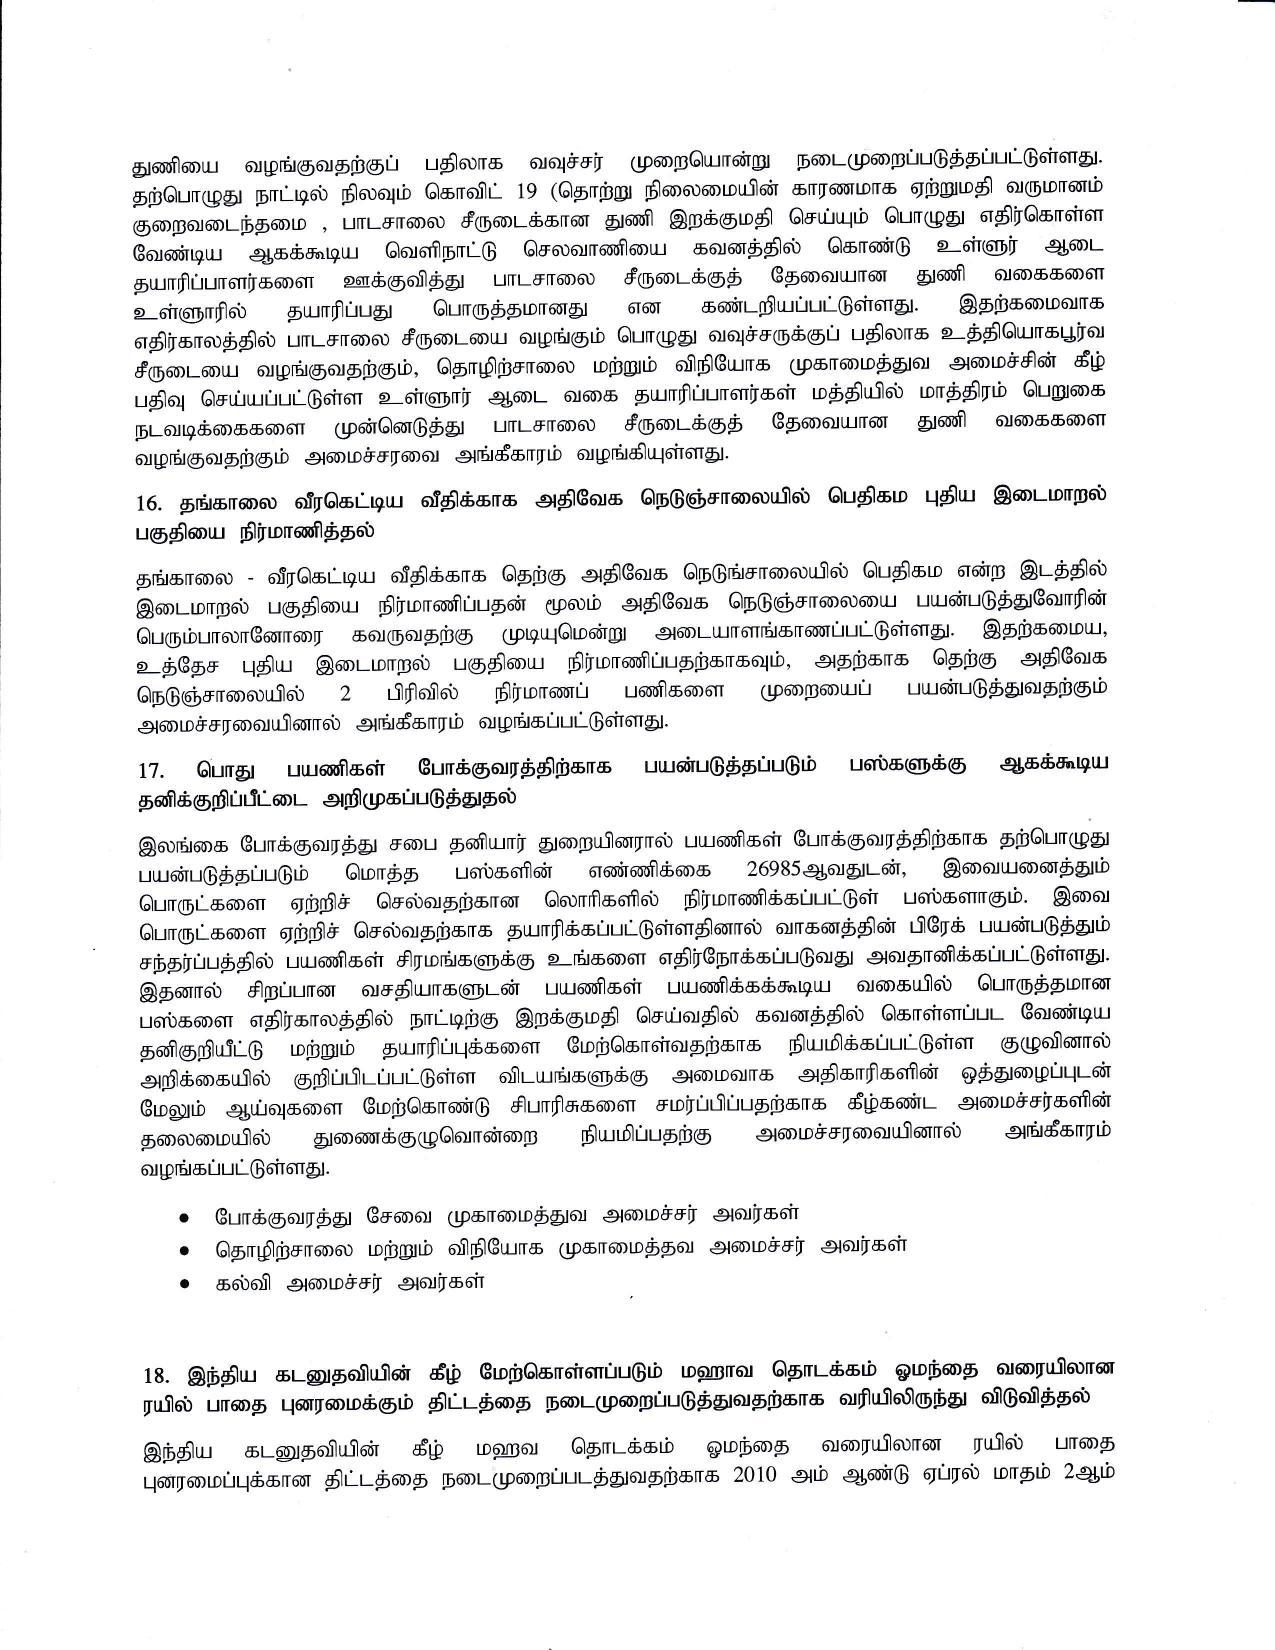 Tamil Cabinet 11.06.20 min page 006